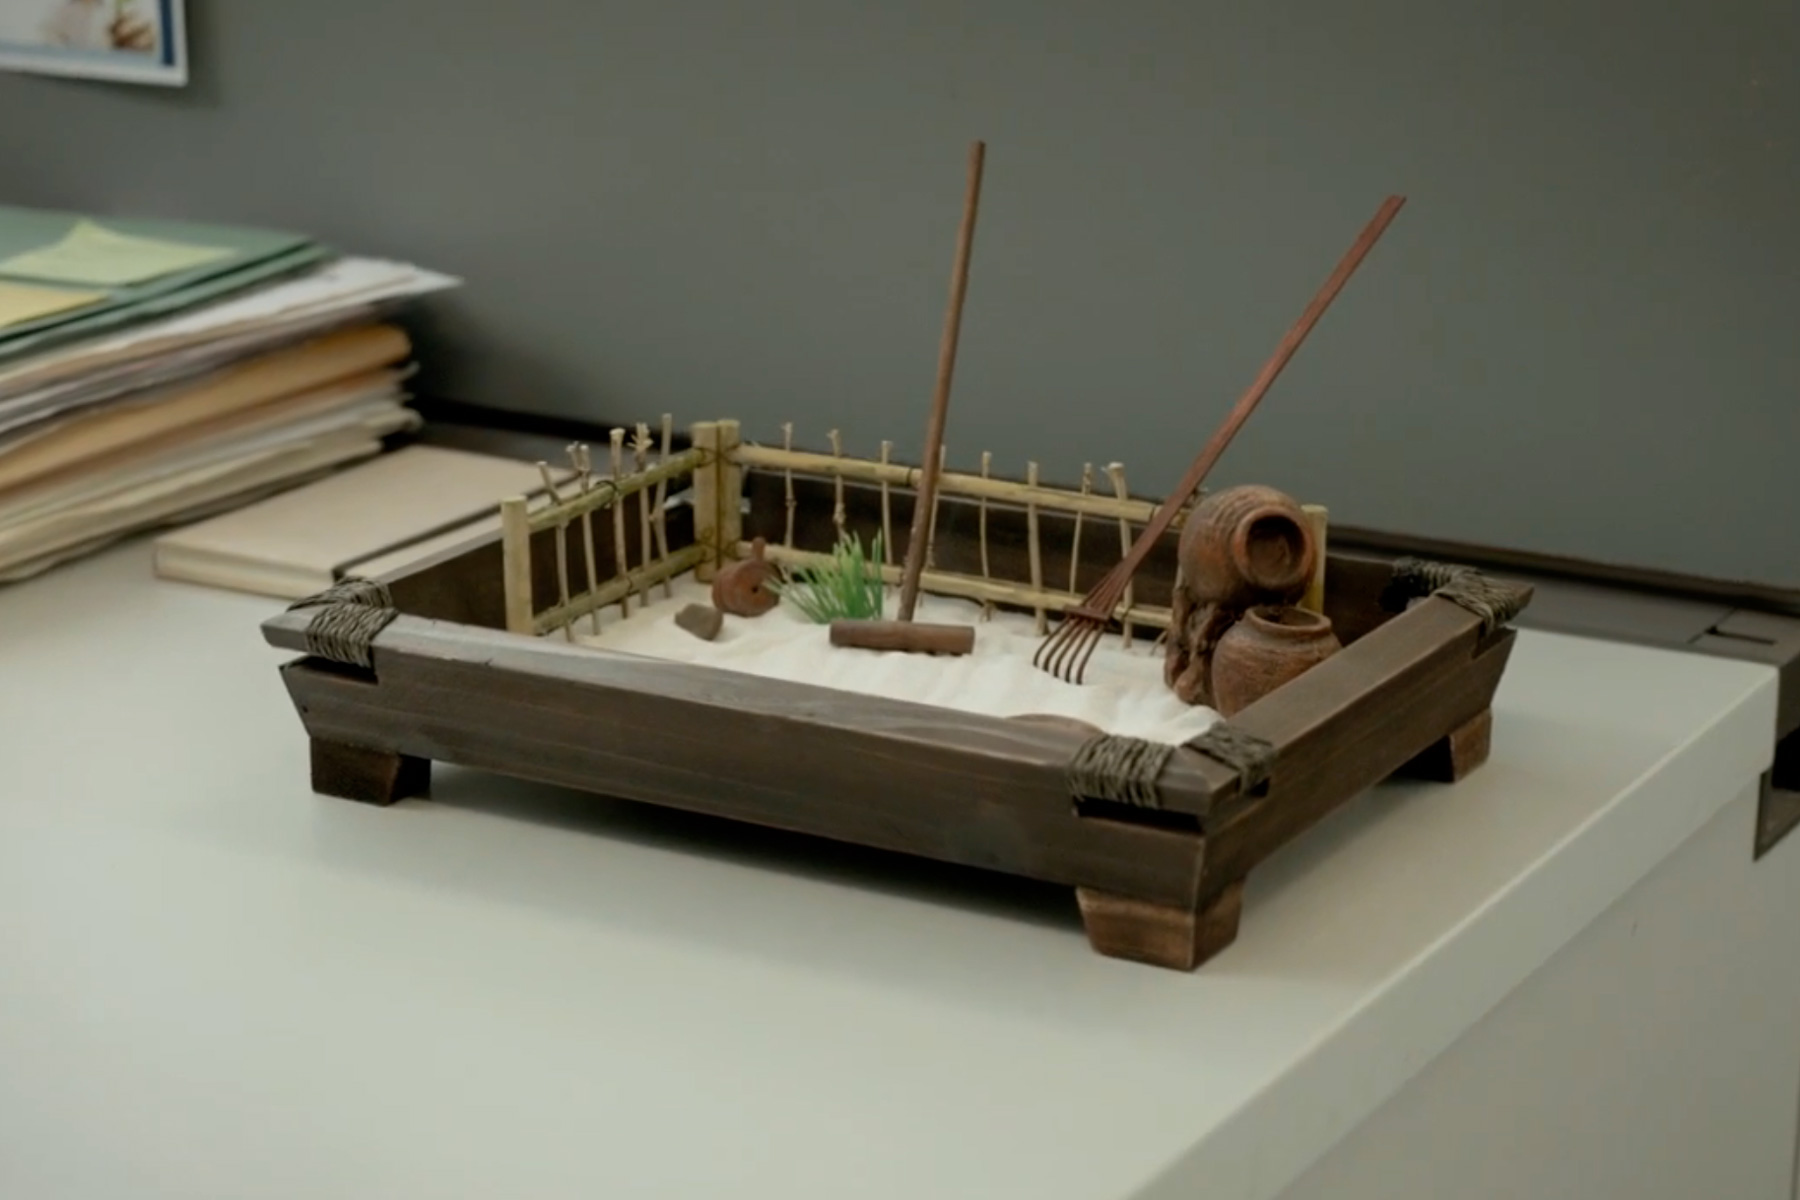 Office Zen Garden Expedia Abandoned Office Stationery Zen Garden Video